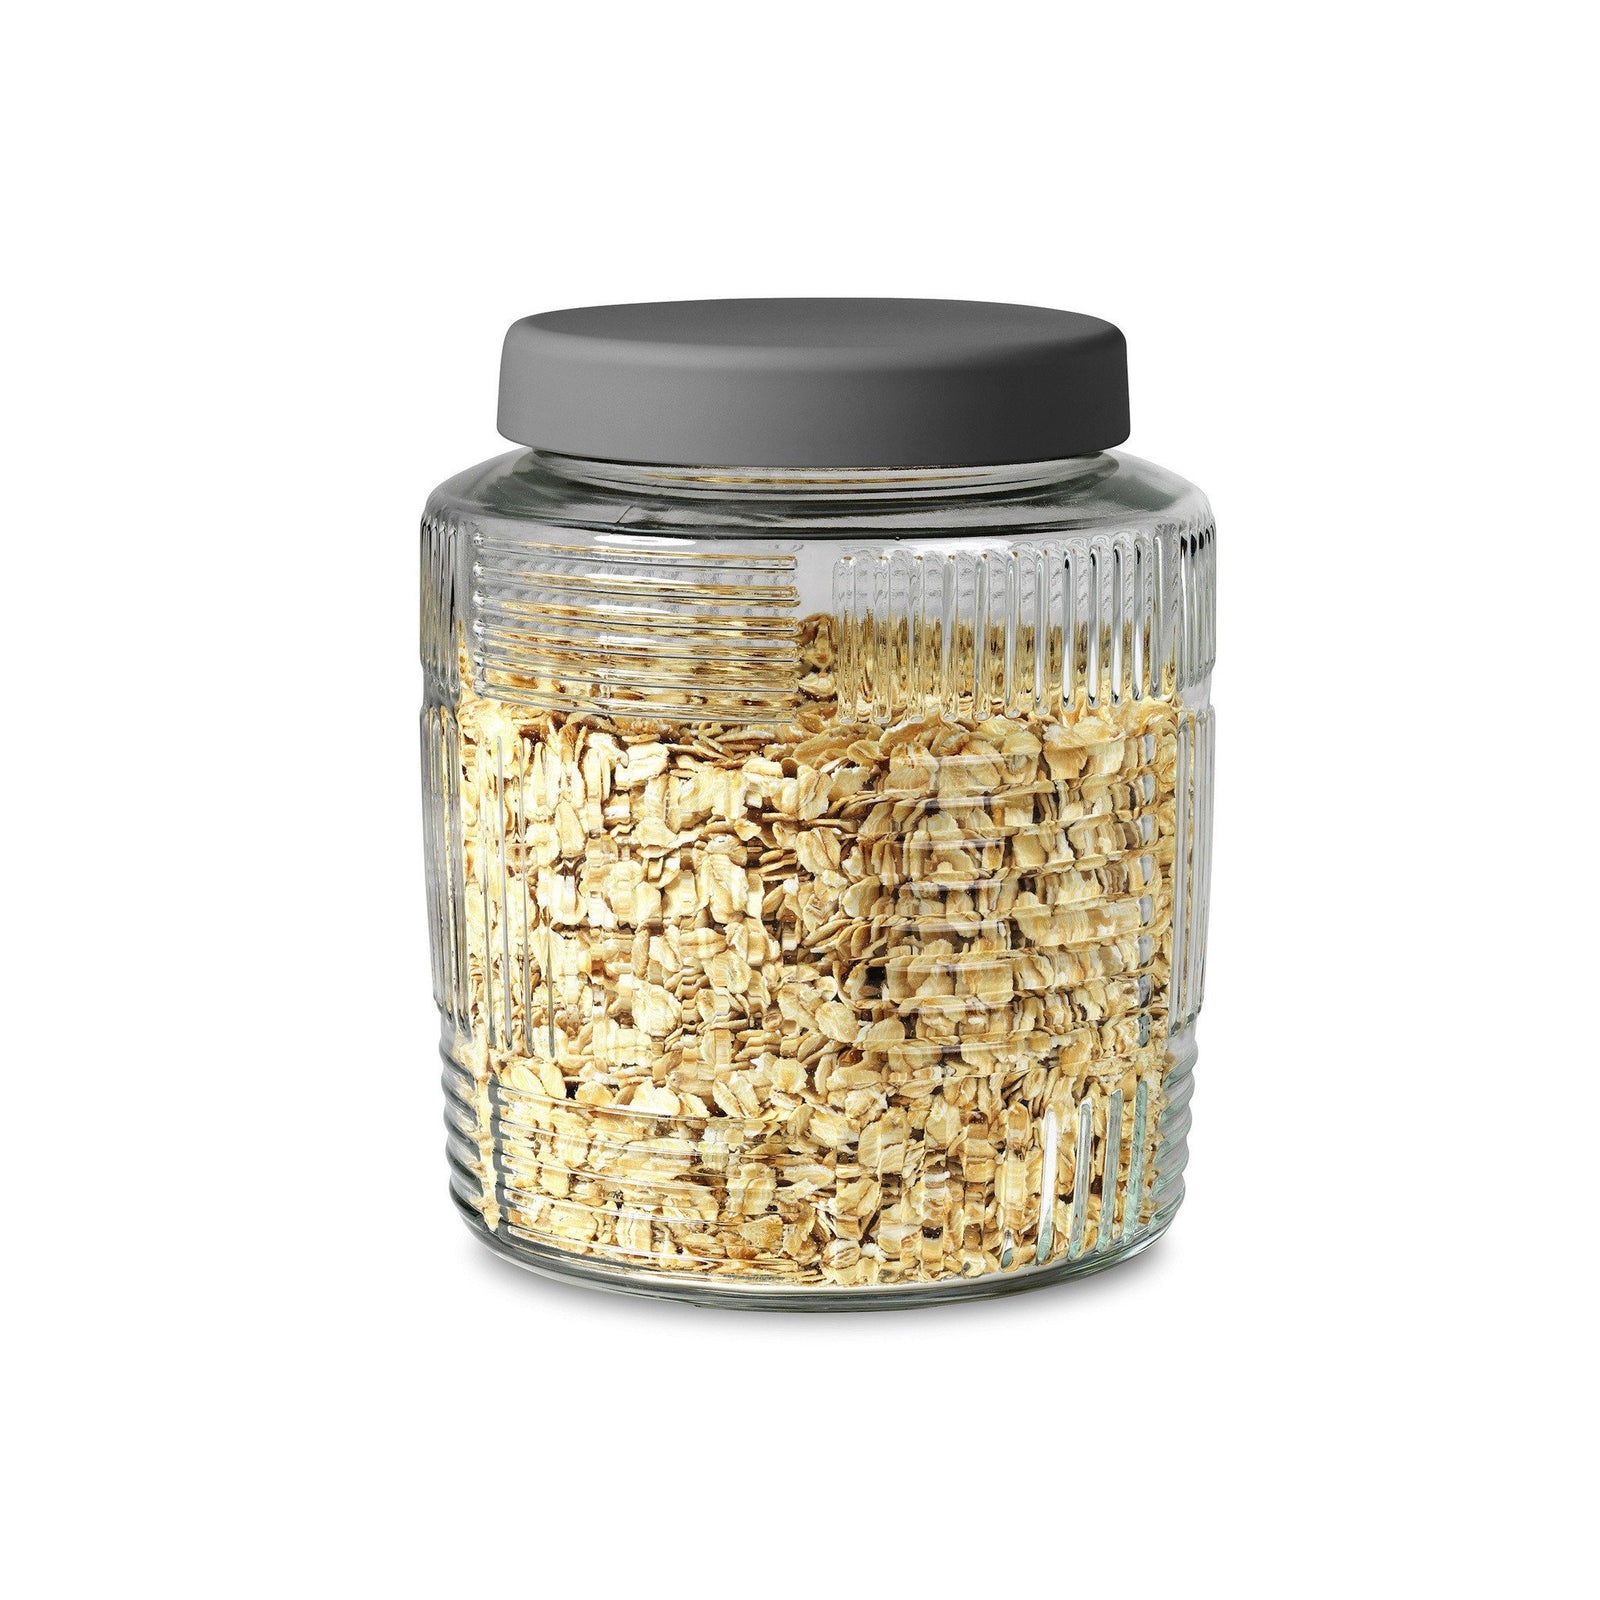 Storage Jar - Grey lid, 2.1 Qt